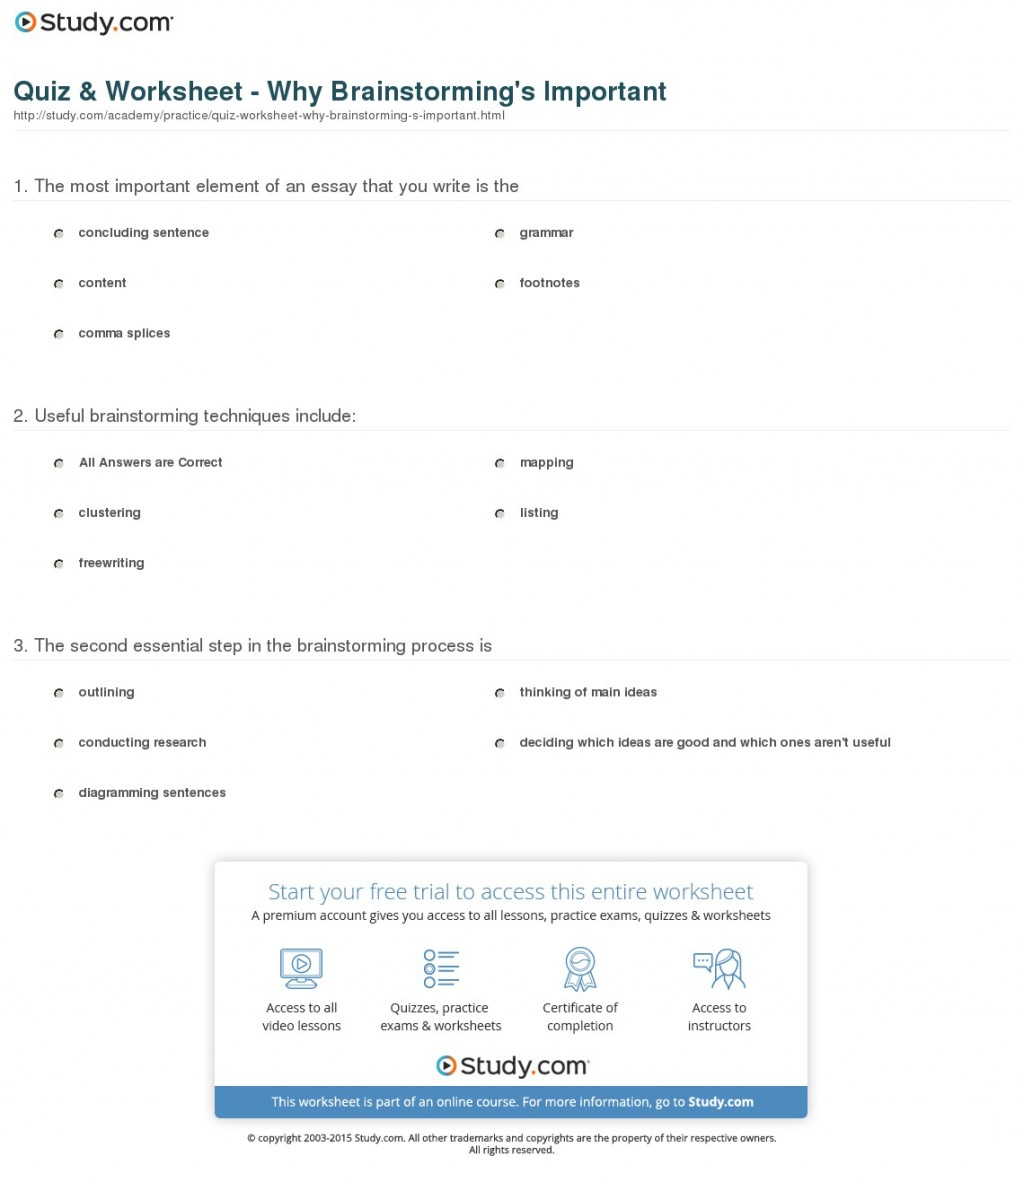 011 Quiz Worksheet Why Brainstorming S Important Essay Outstanding Writing Techniques Topics College Large